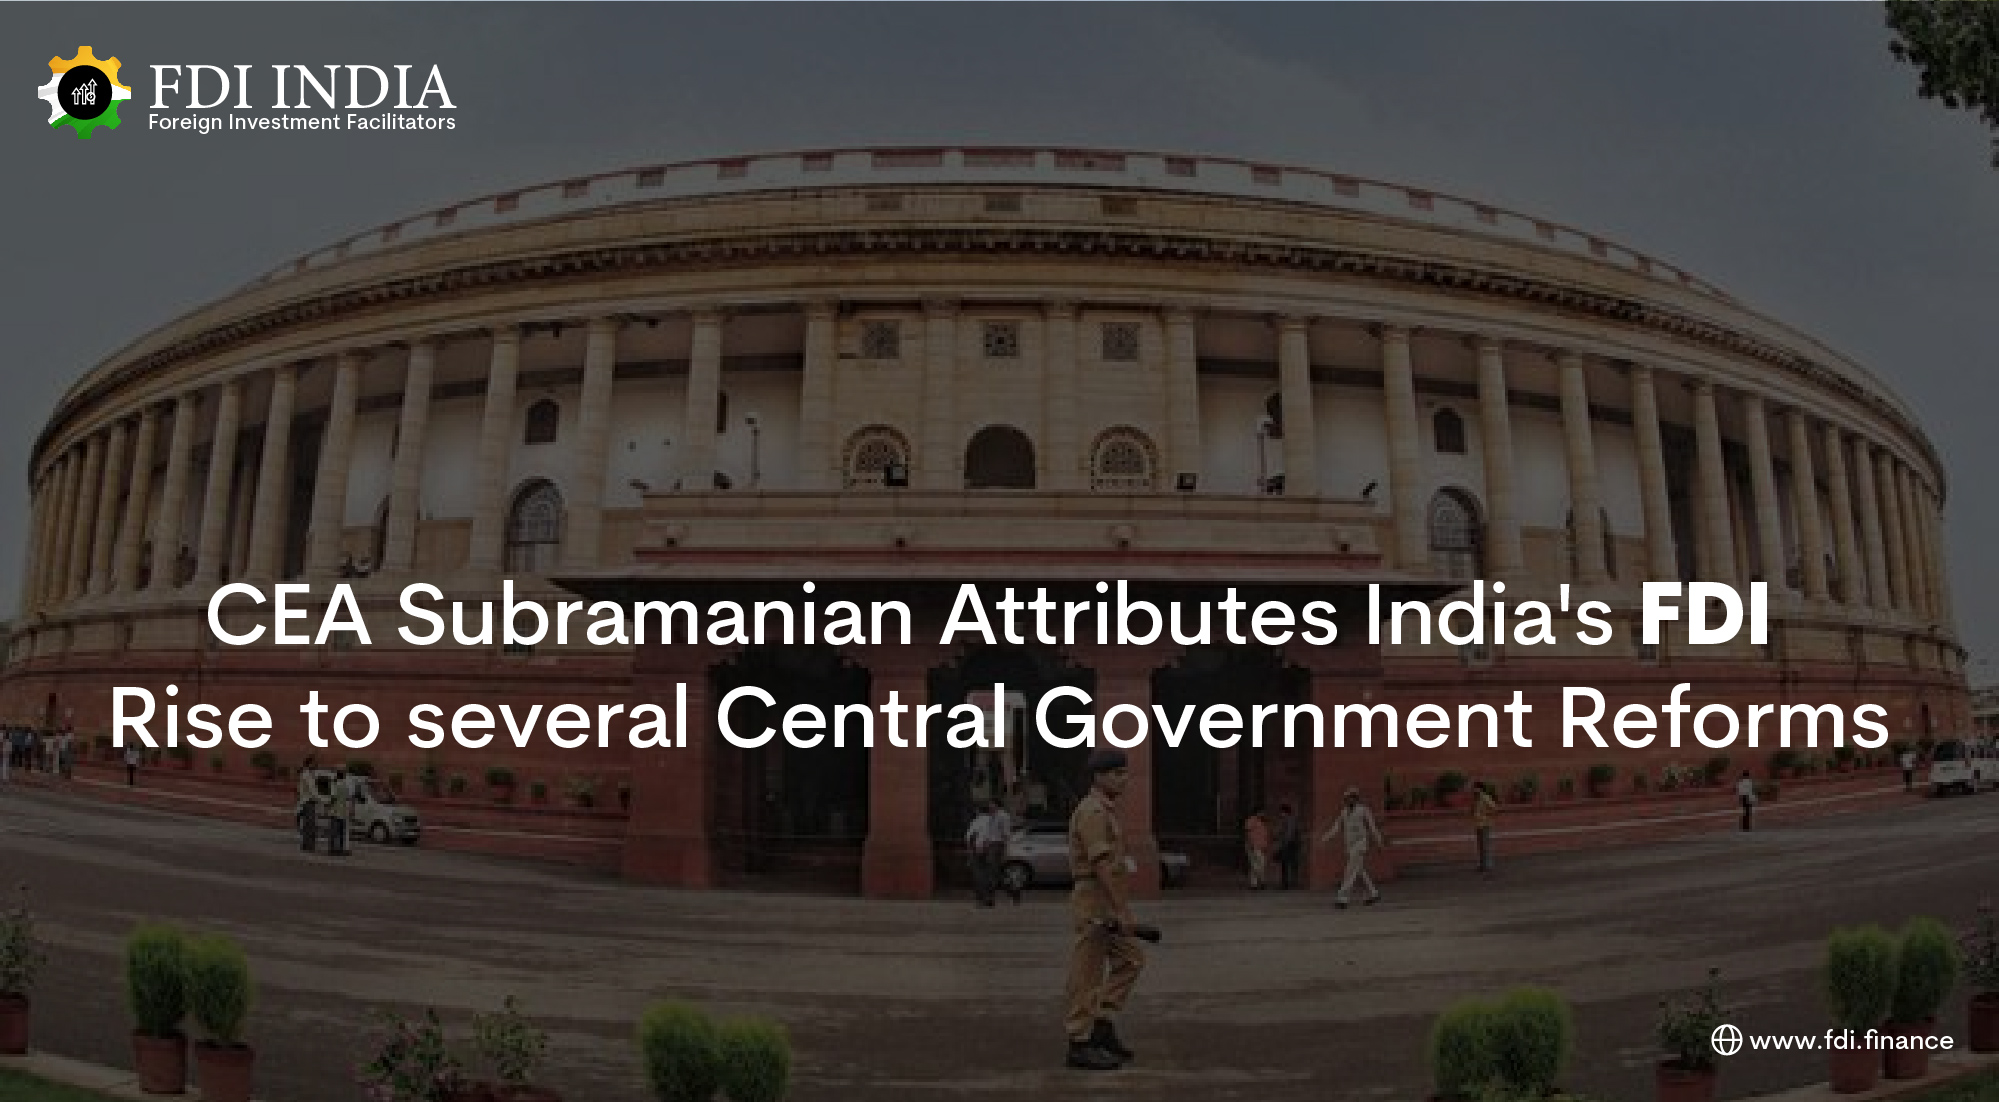 CEA Subramanian Attributes India's FDI Rise to several Central Government Reforms